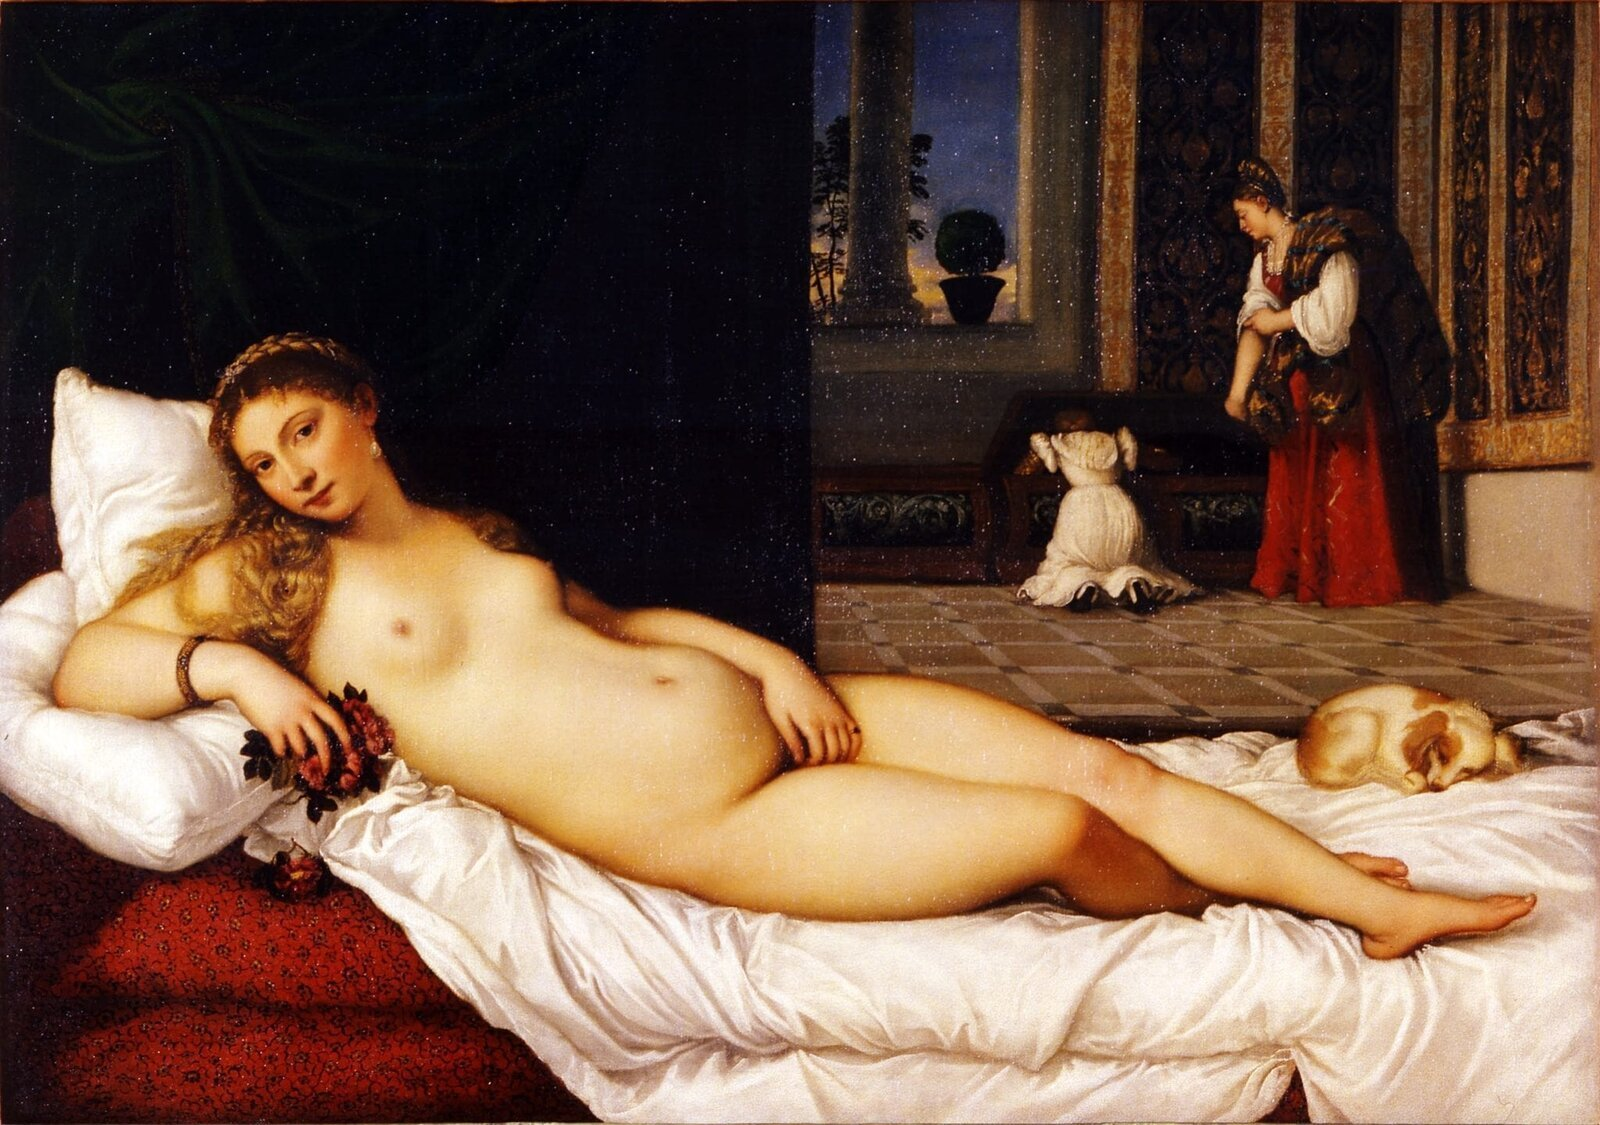 3 Of The Most Controversial Paintings In Art History